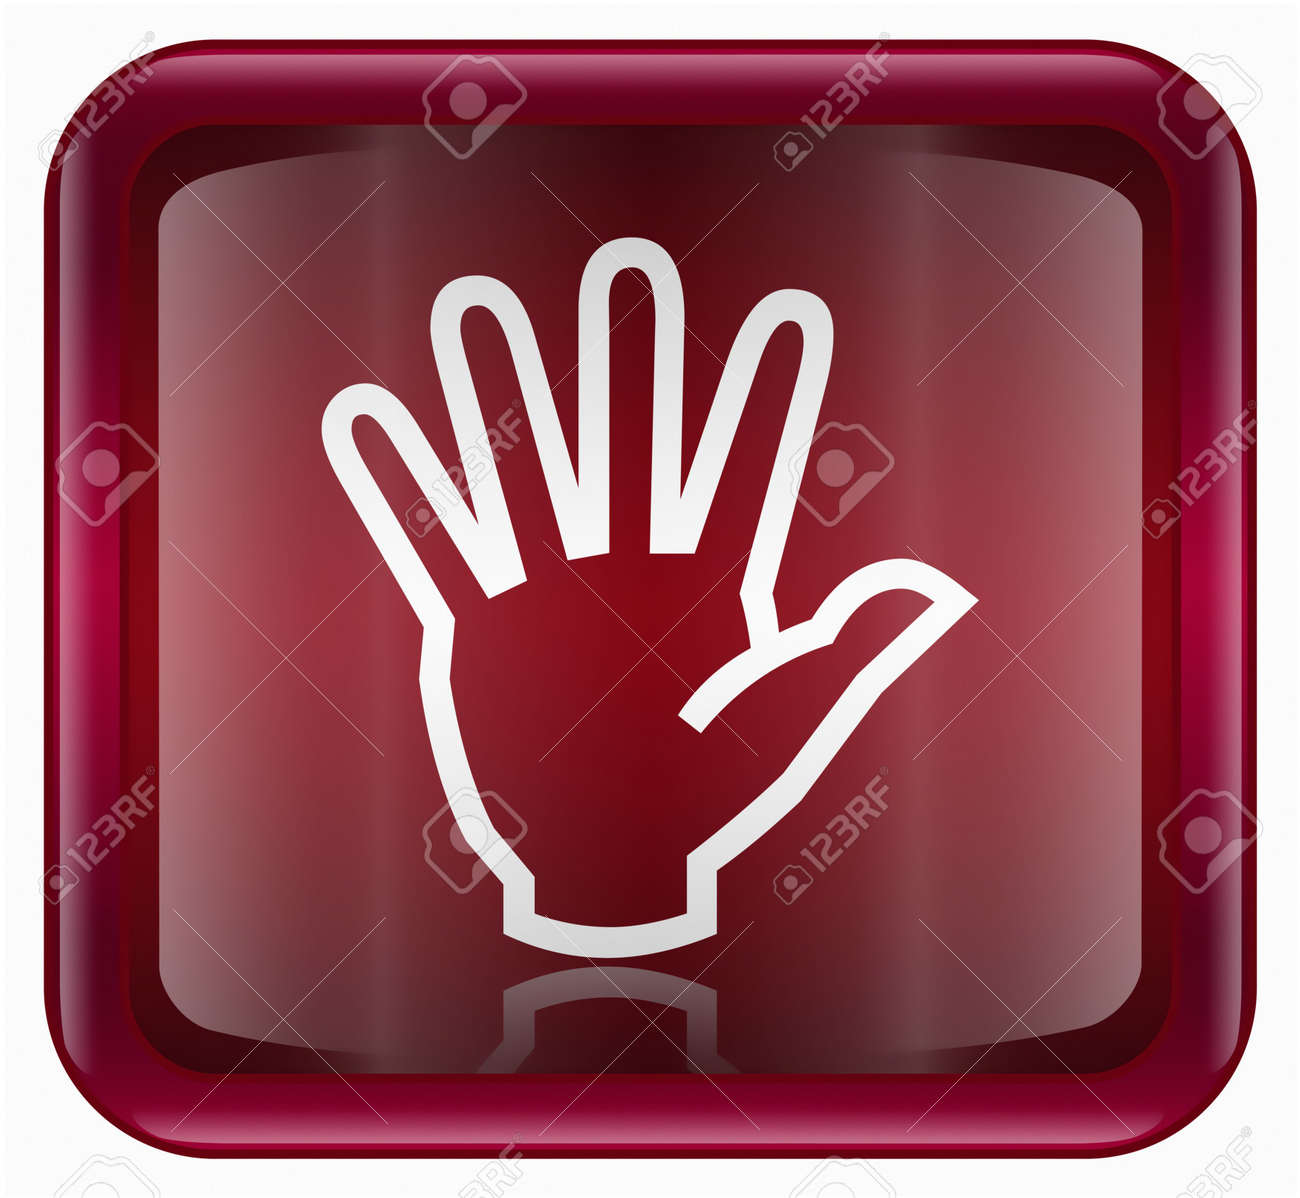 hand icon red, isolated on white background Stock Photo - 2196517